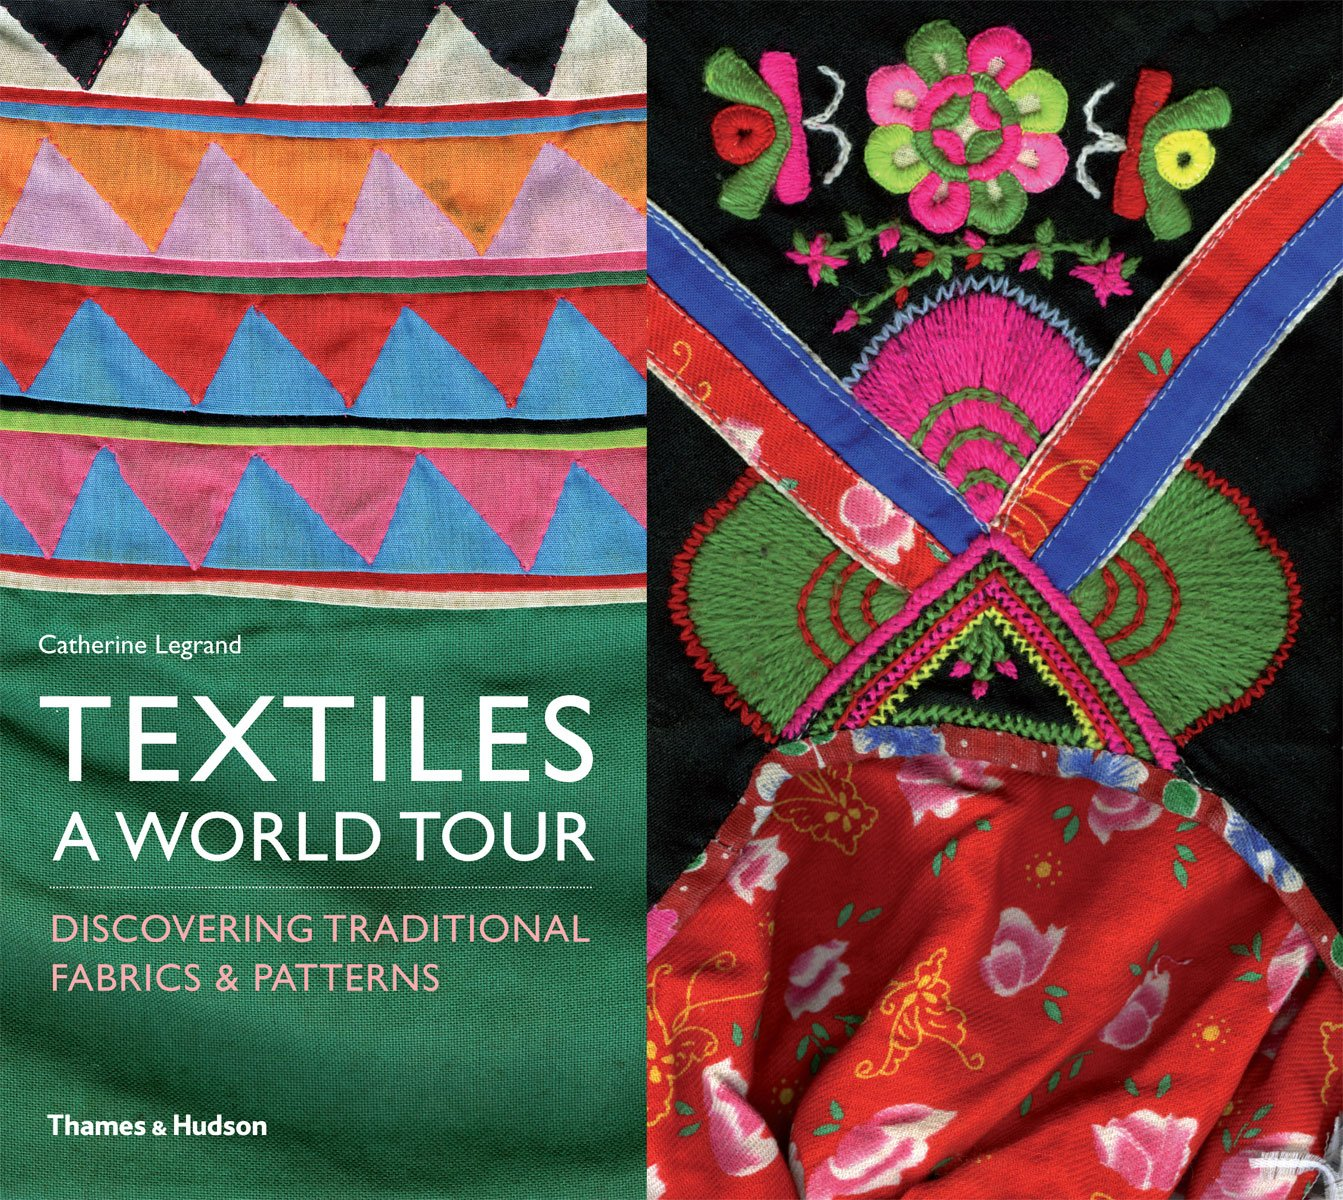 Textiles A World Tour Catherine Legrand 9780500290330 Amazon Com Books